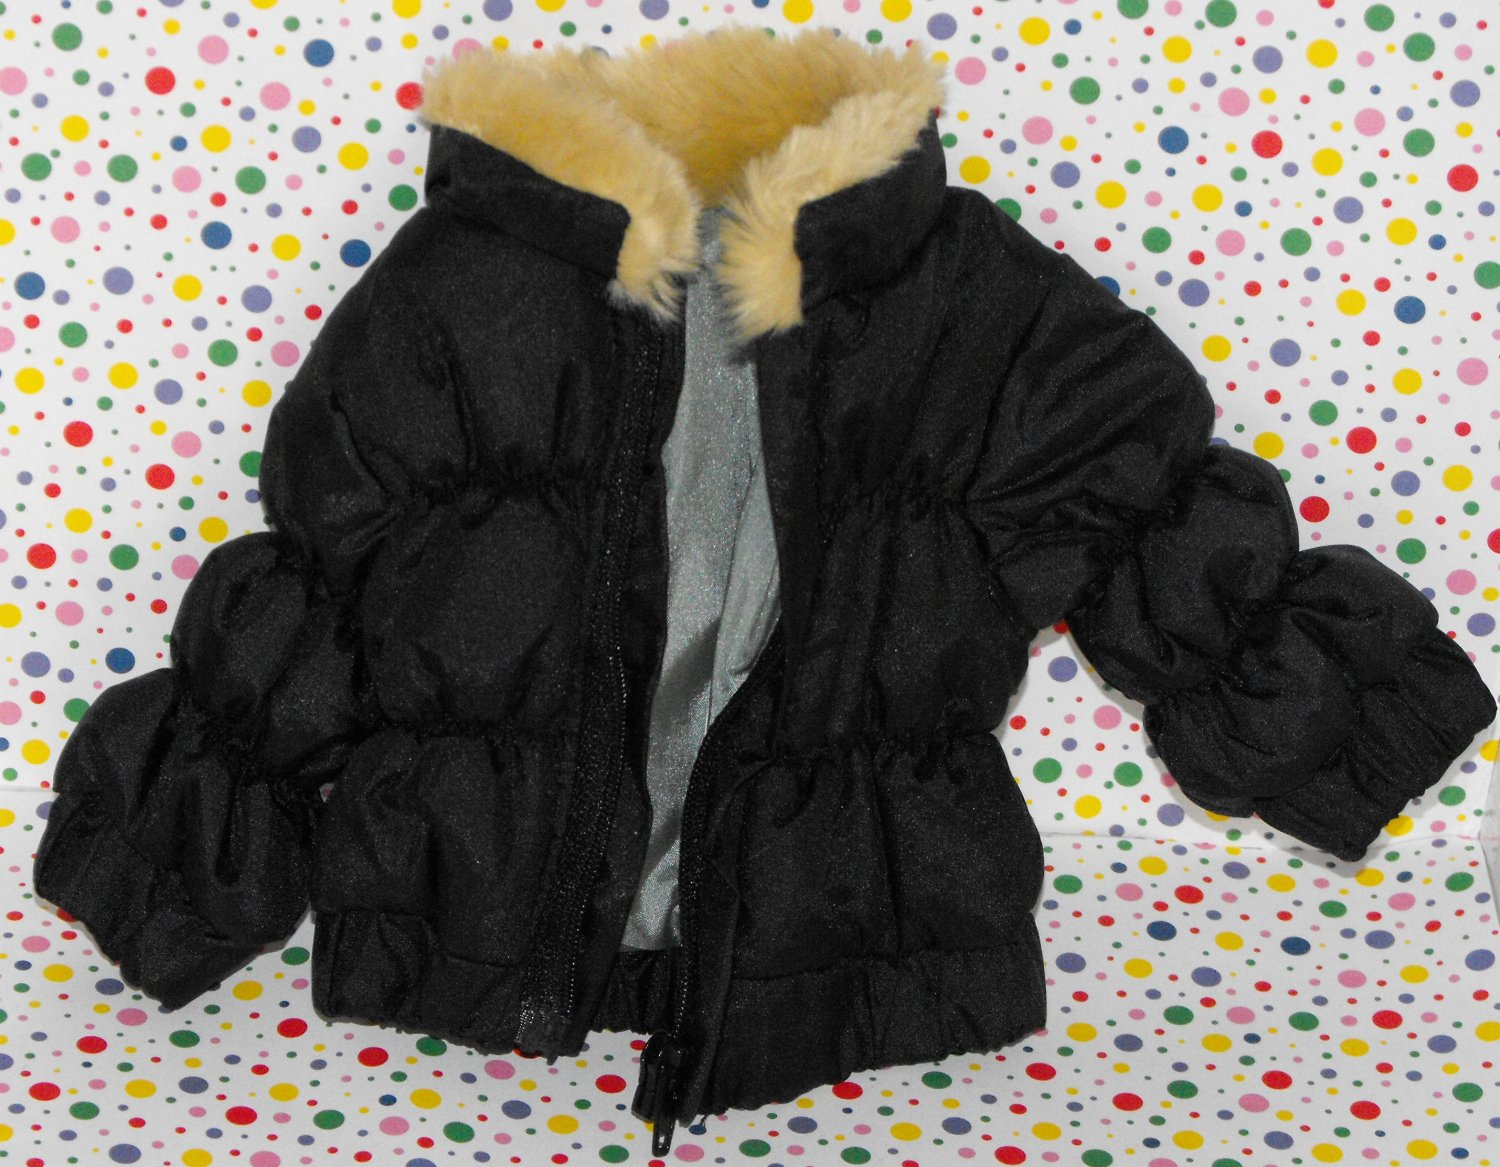 TollyTots Amerian Girl Battat Doll Clothes Puffy Black Winter Jacket